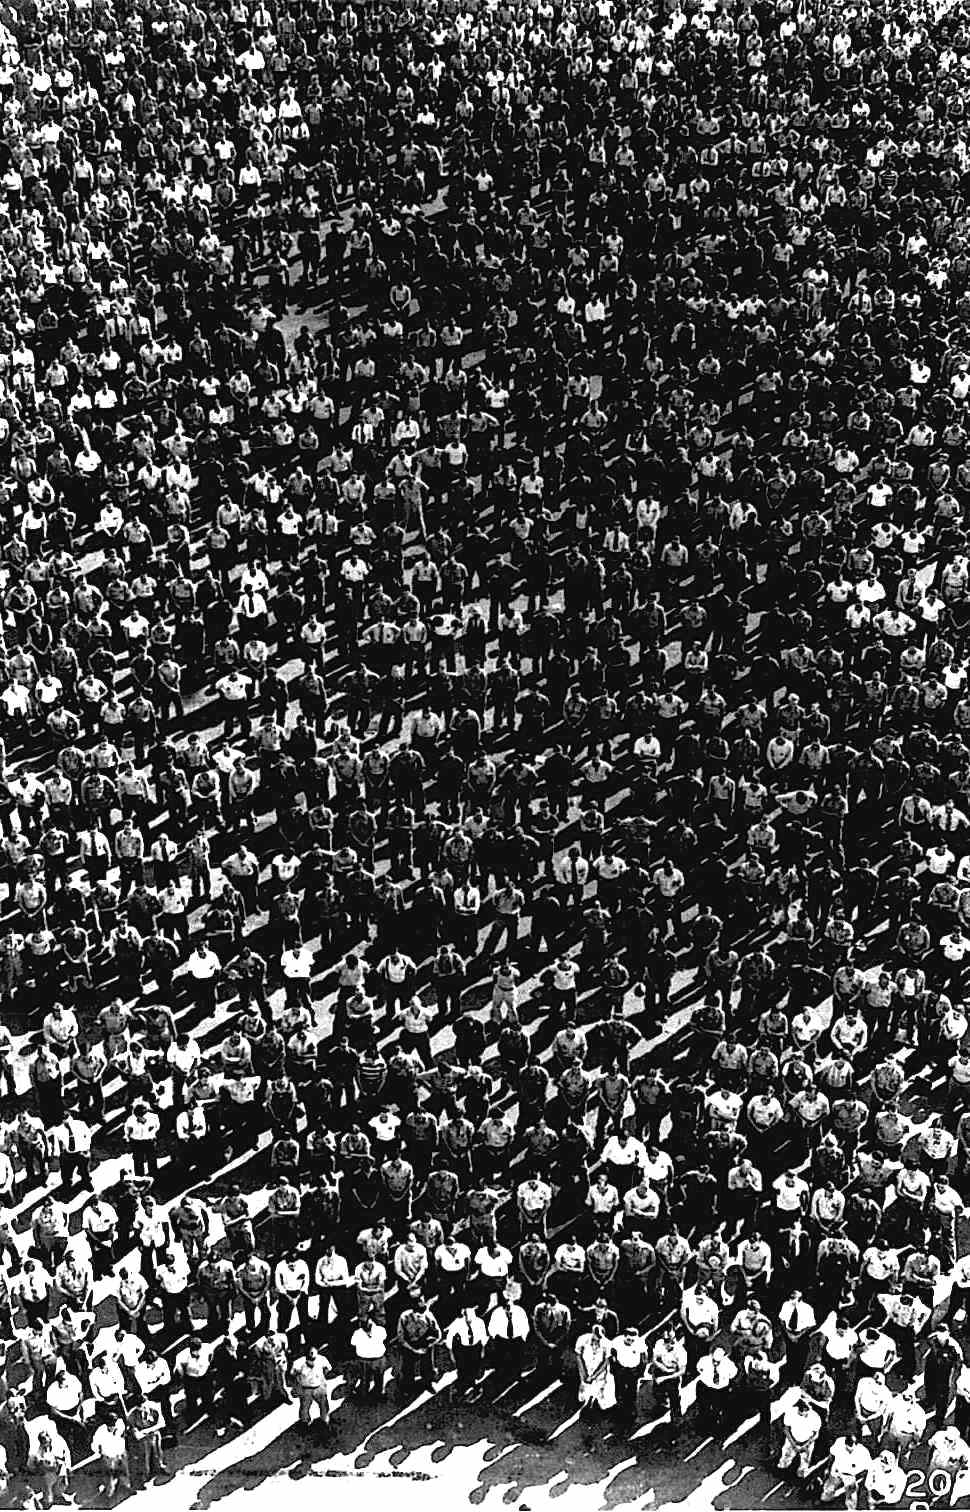 an anonymous 1942 aerial photograph of a crowd of men